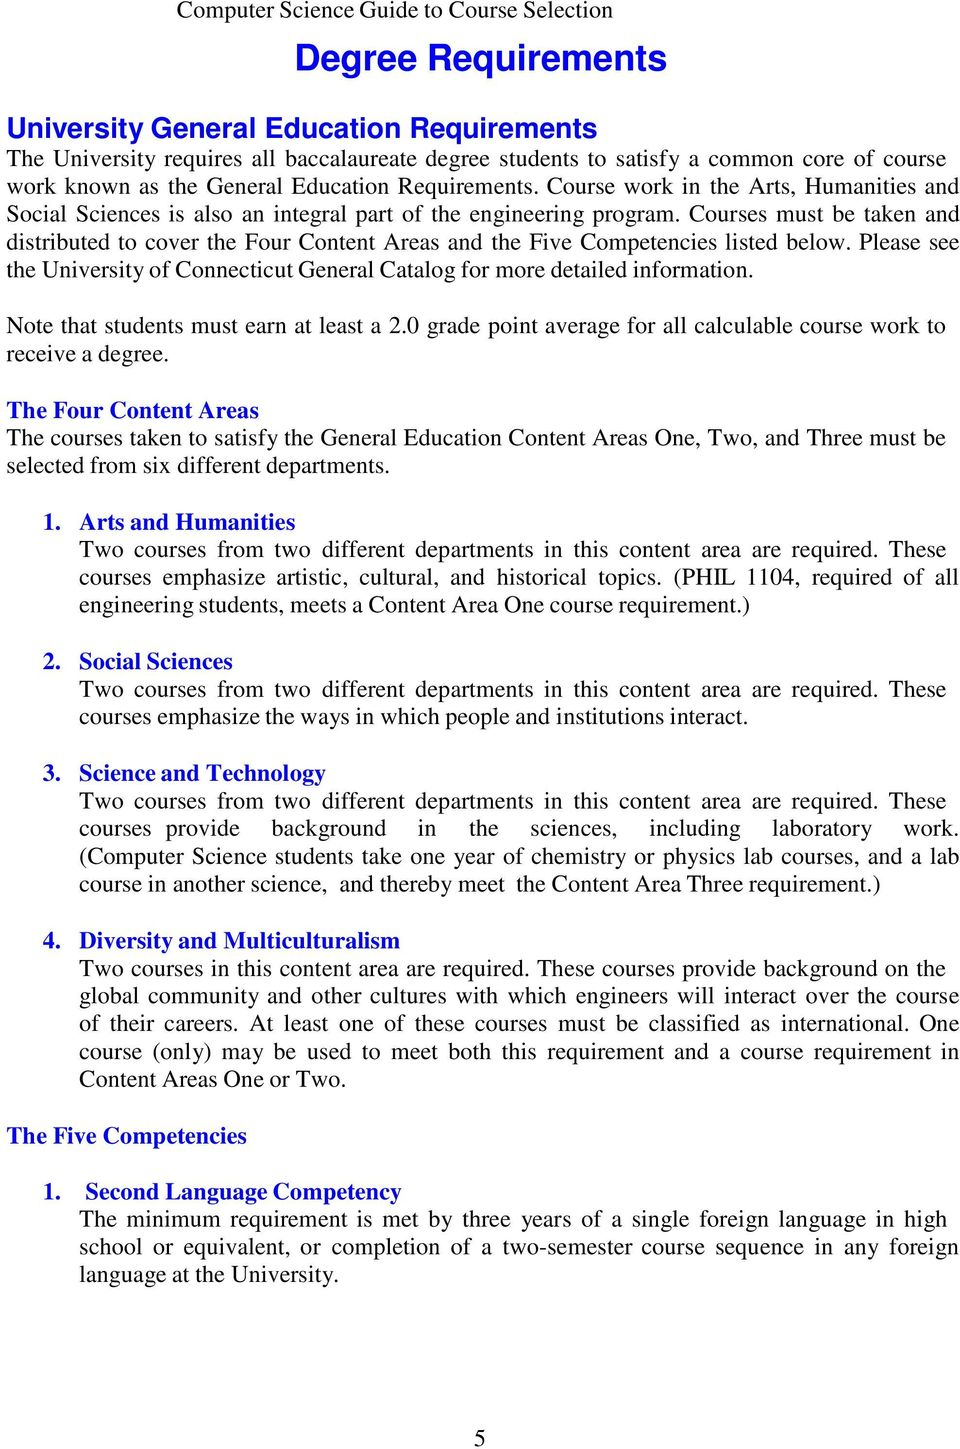 Courses must be taken and distributed to cover the Four Content Areas and the Five Competencies listed below. Please see the University of Connecticut General Catalog for more detailed information.